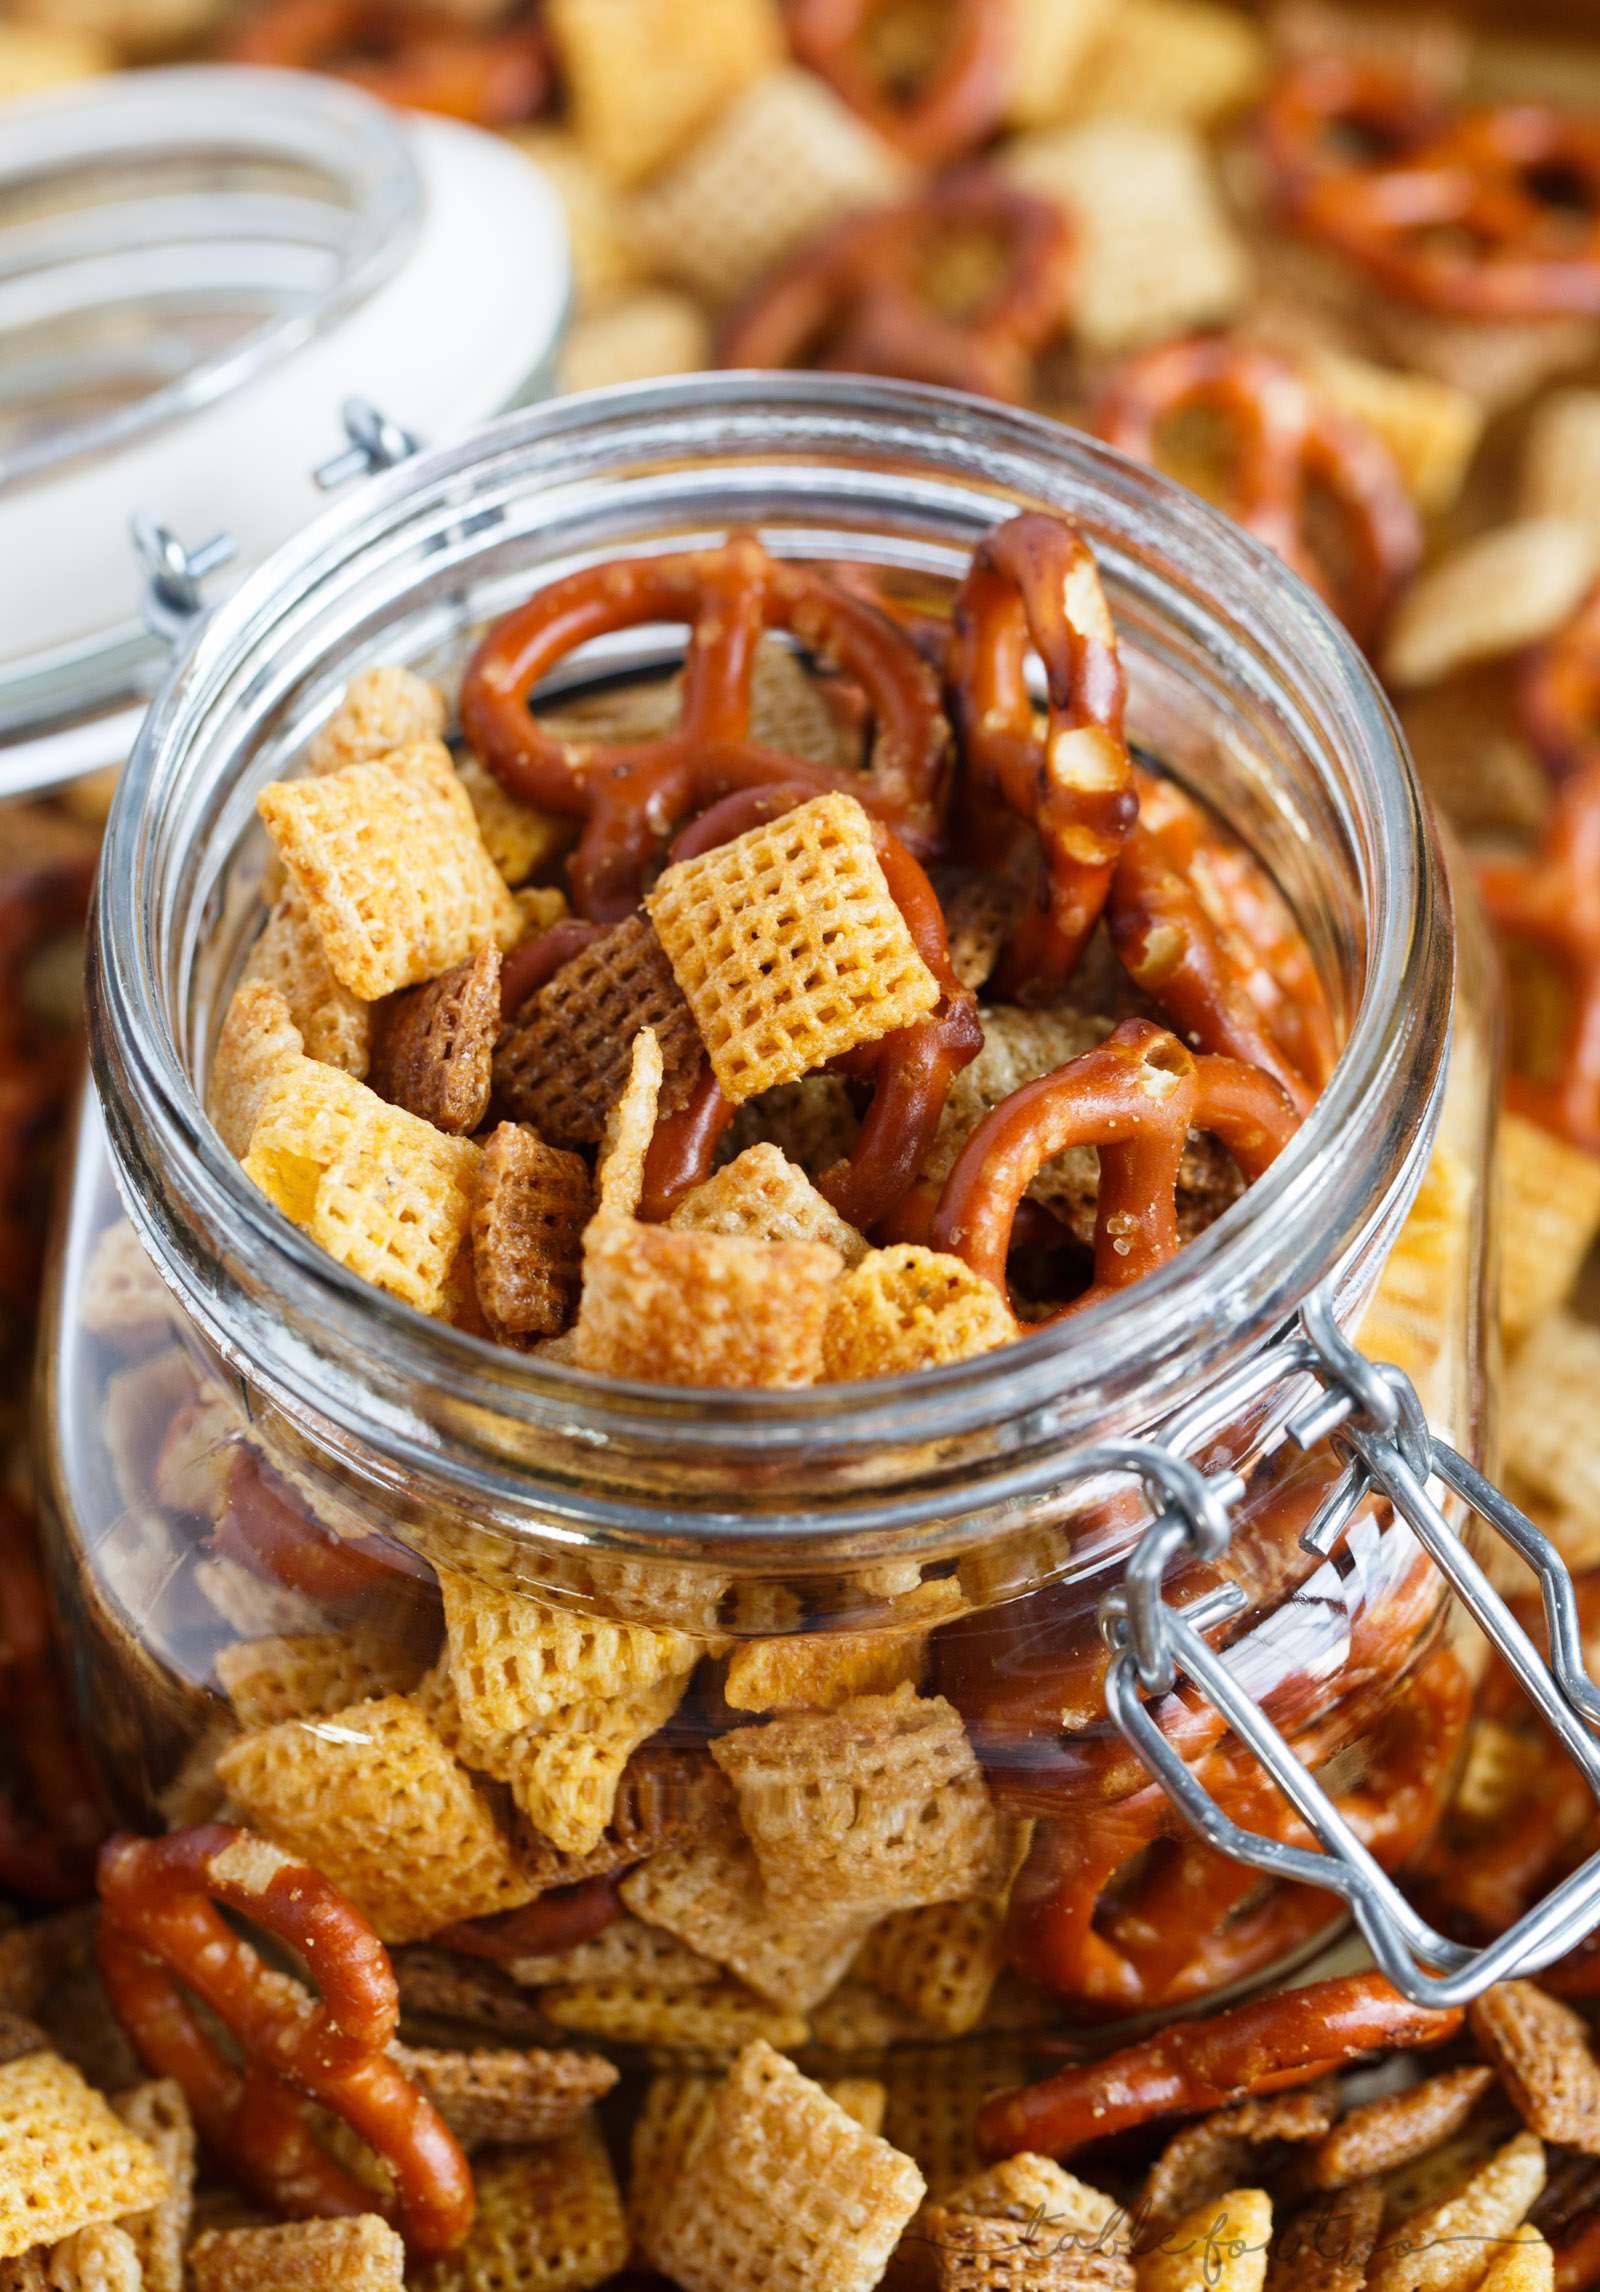 Chex mix made at home is great year round especially when you have the craving for a snack! It's so much better than store-bought because YOU control what ingredients go into your chex mix!